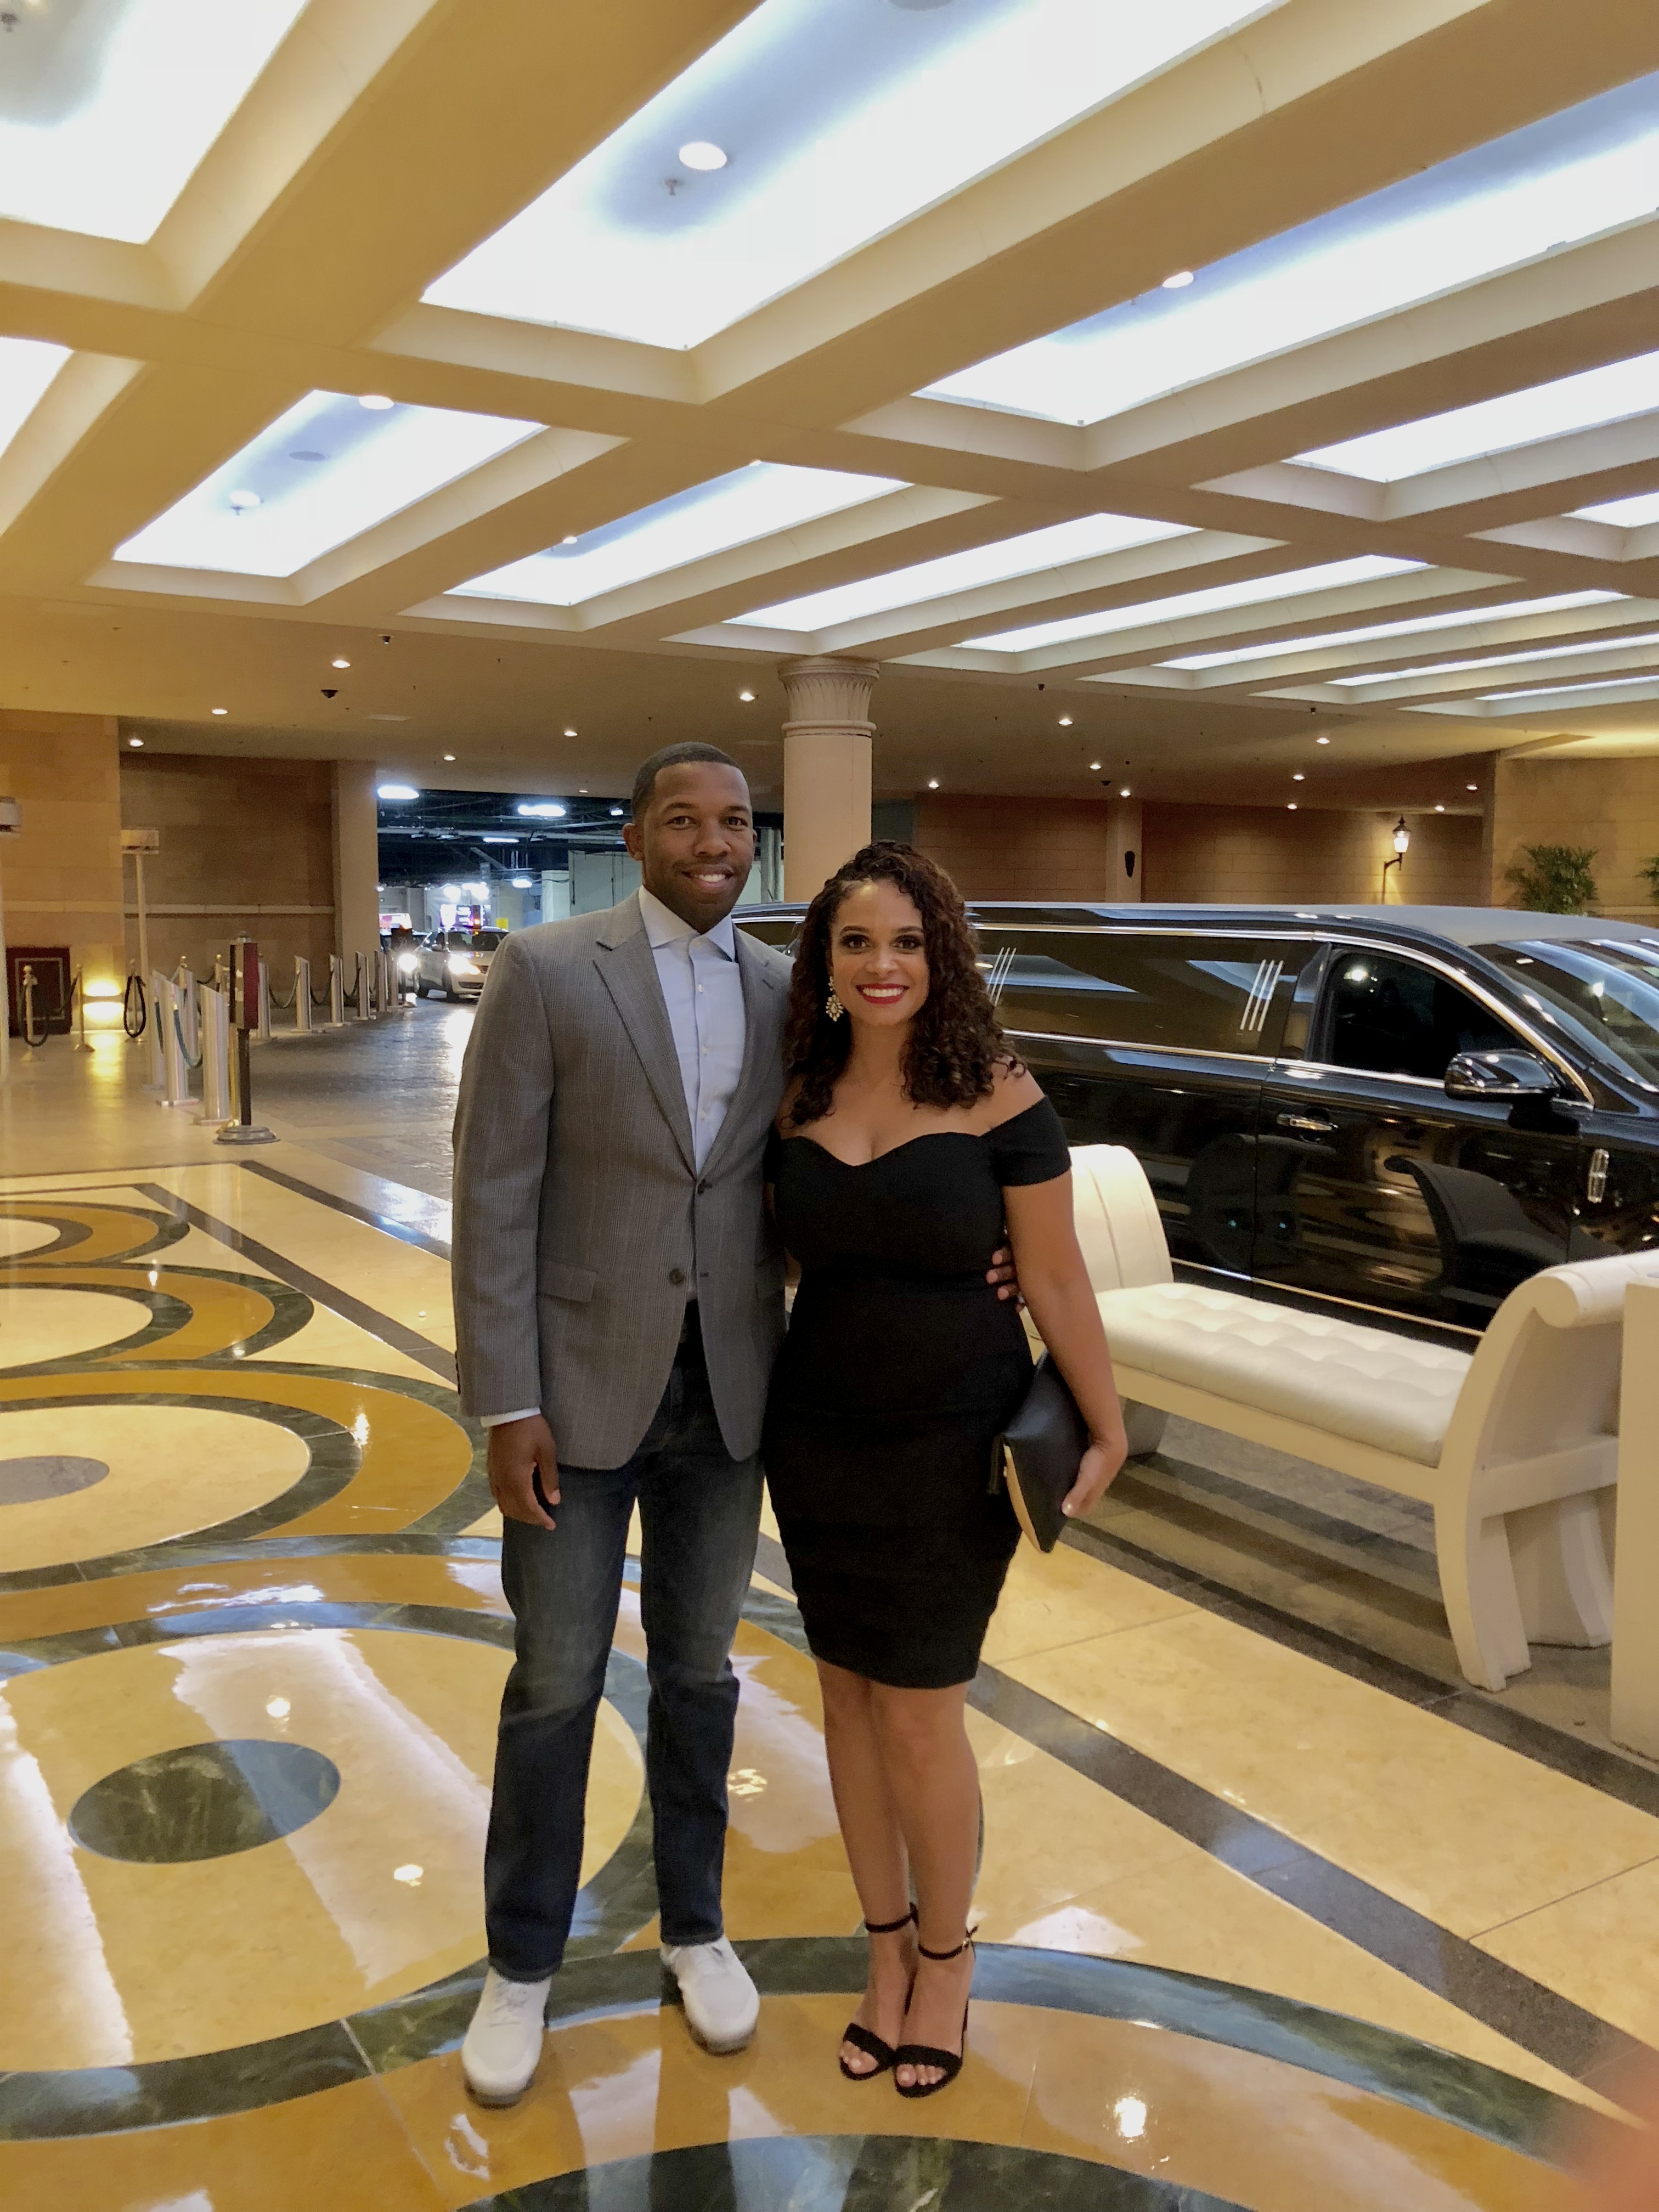 @tiffanydbrown_'s cover photo for '3 Important Reasons Why Married Couples Love Las Vegas - Tiffany D. Brown'